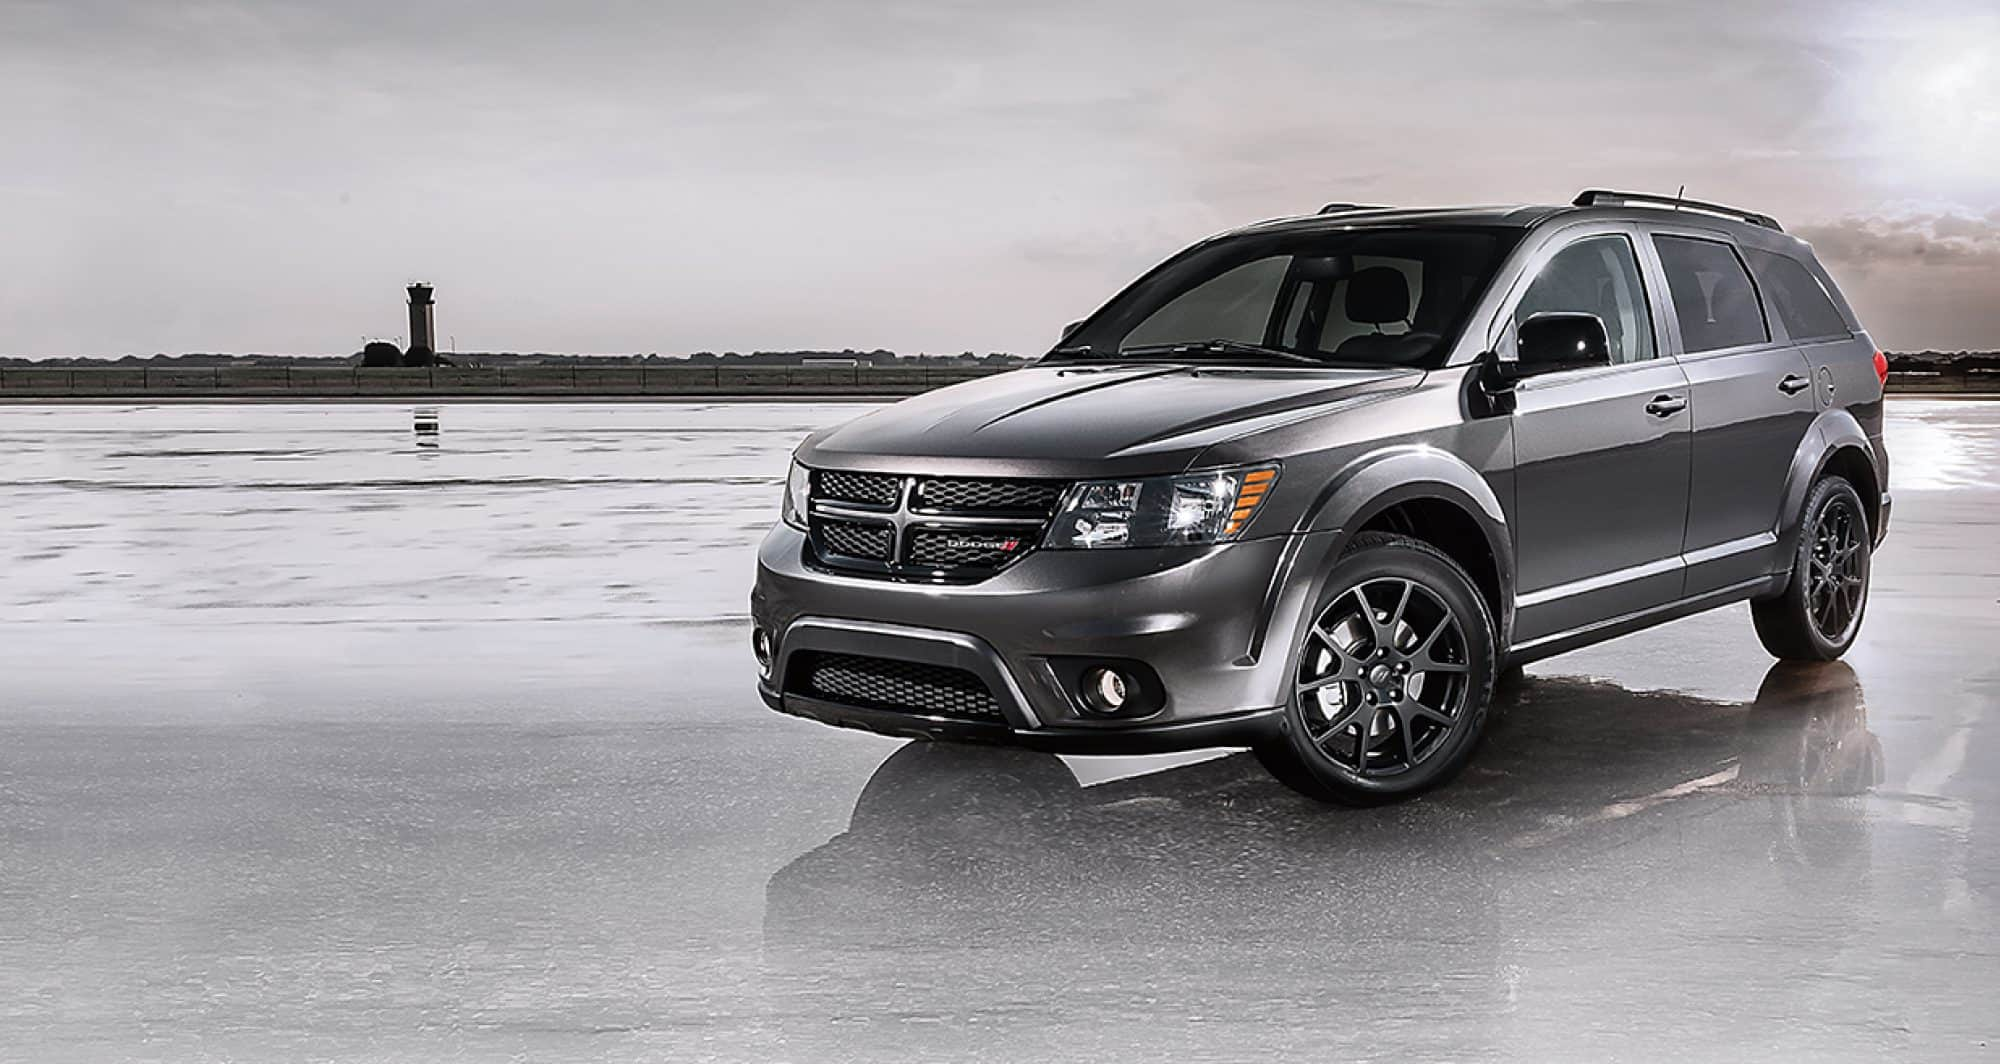 new 2018 dodge journey for sale near leon valley tx san antonio tx lease or buy a new 2018. Black Bedroom Furniture Sets. Home Design Ideas